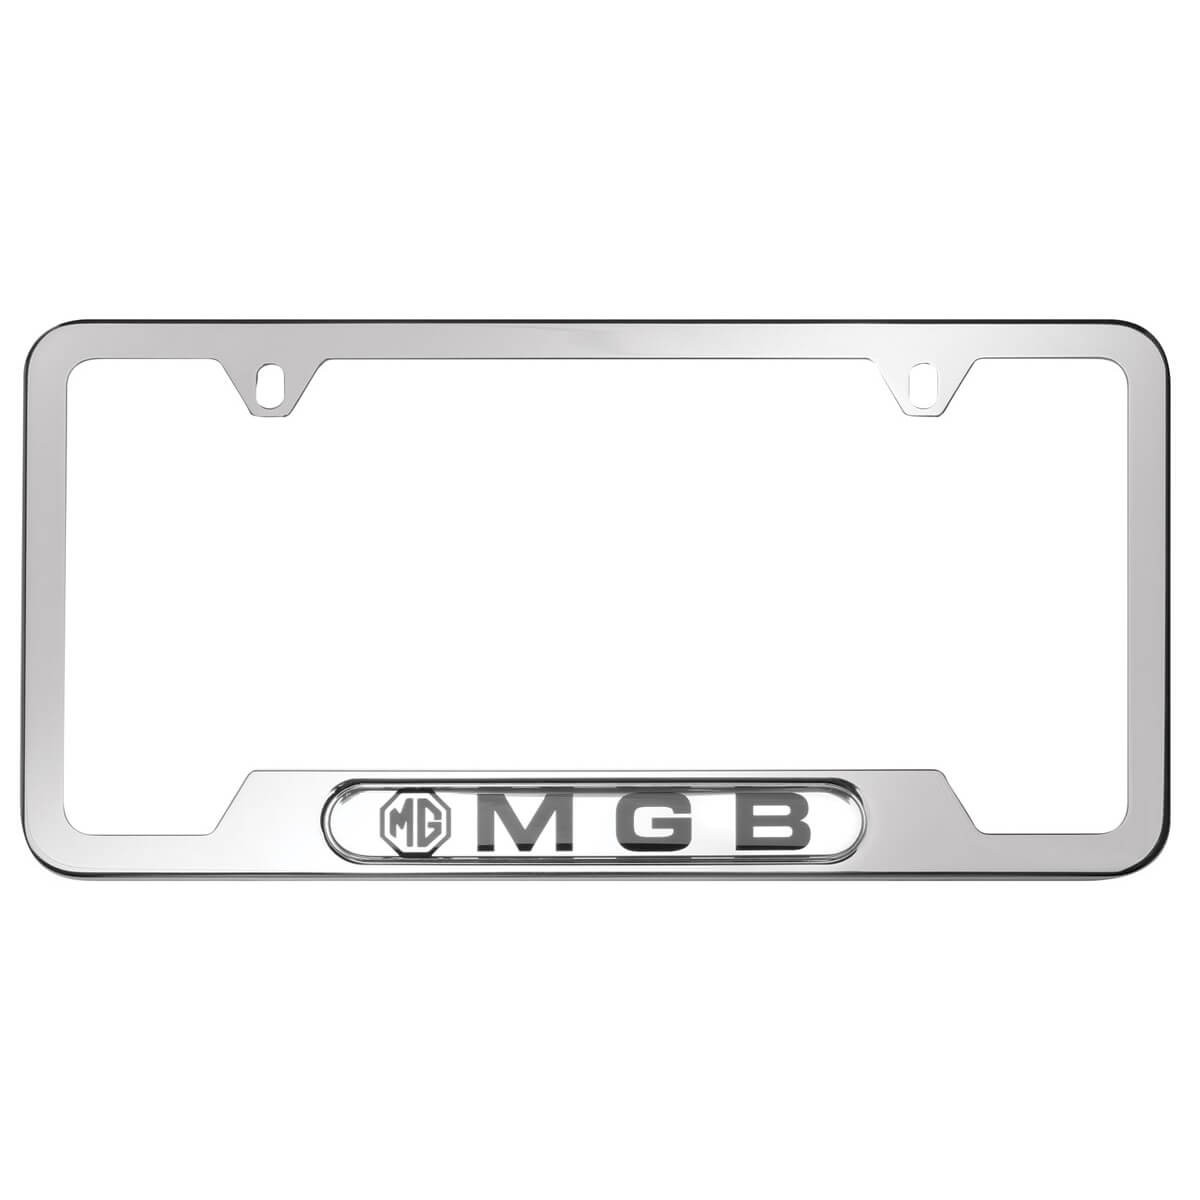 222 796 Mgb License Plate Frame Stainless Steel Moss